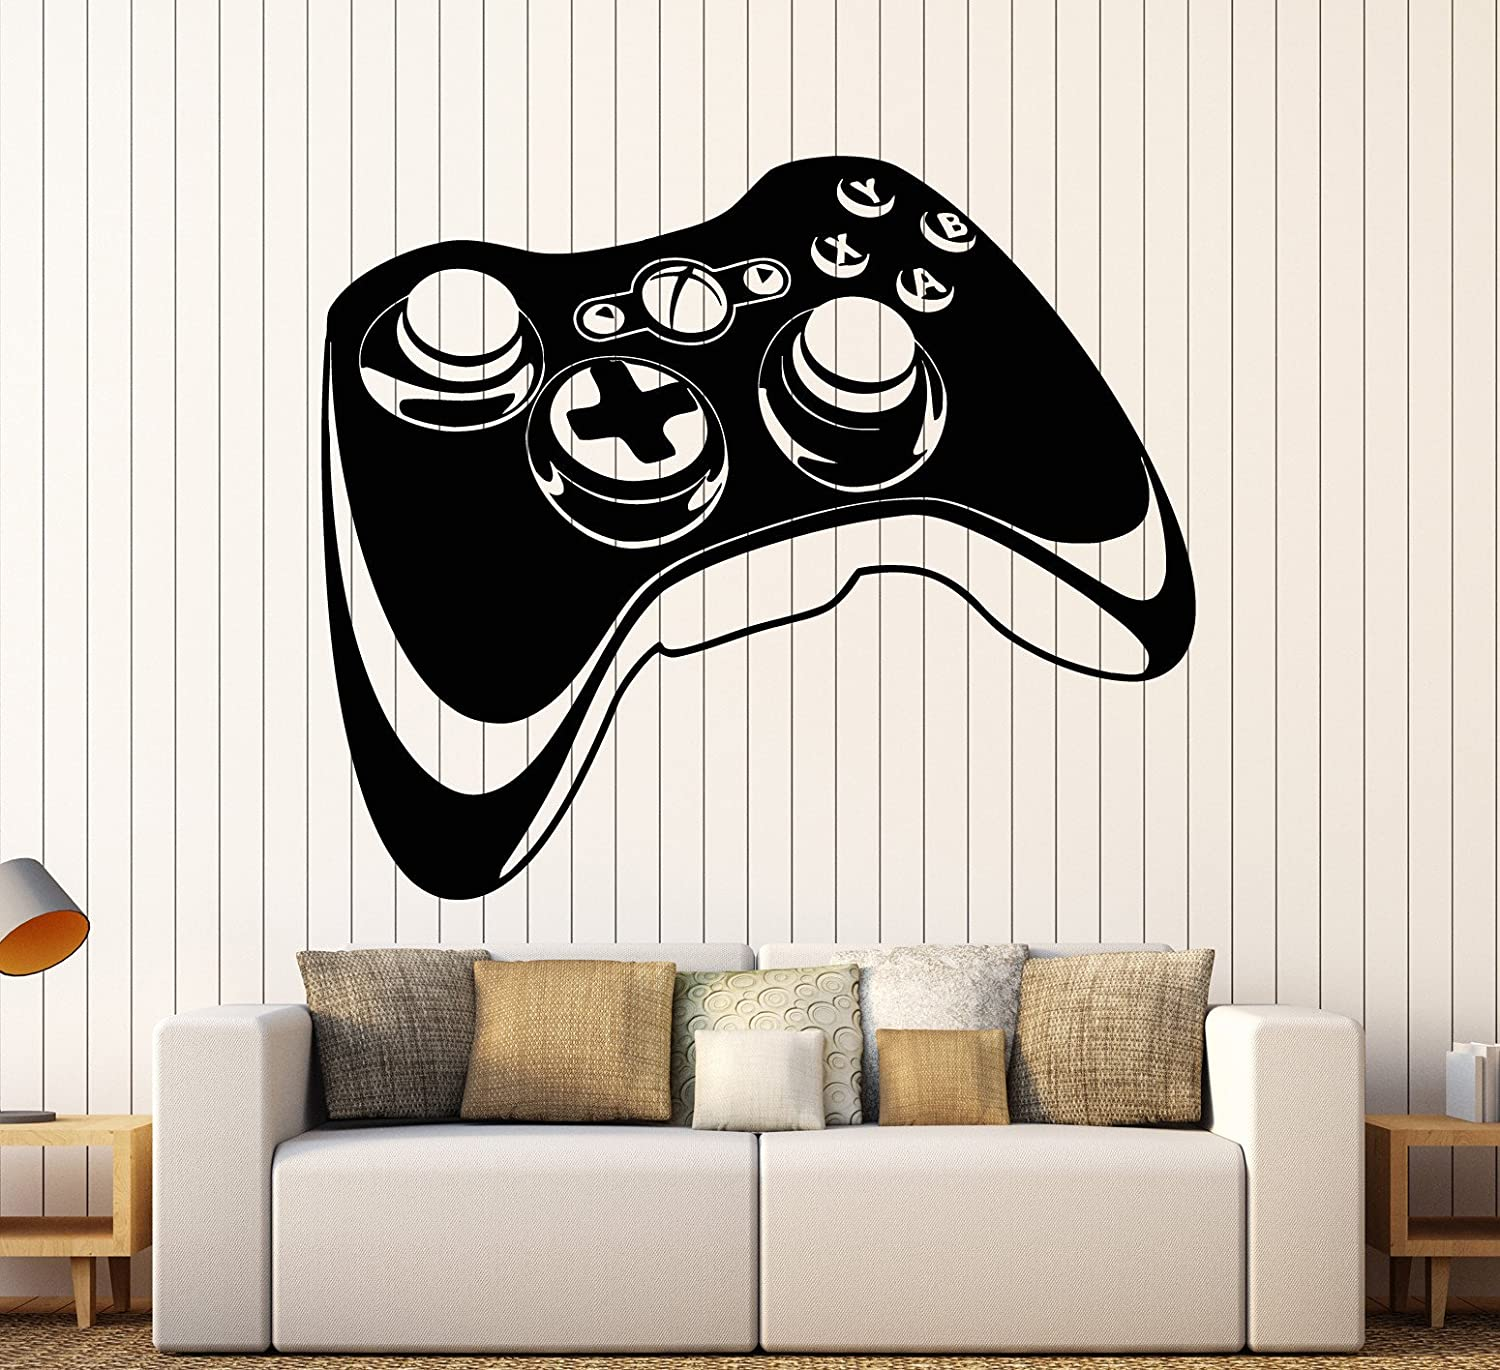 Vinyl Wall Decal Joystick Video Games Gift for Teen Gaming Stickers Large Decor (ig4000) Black